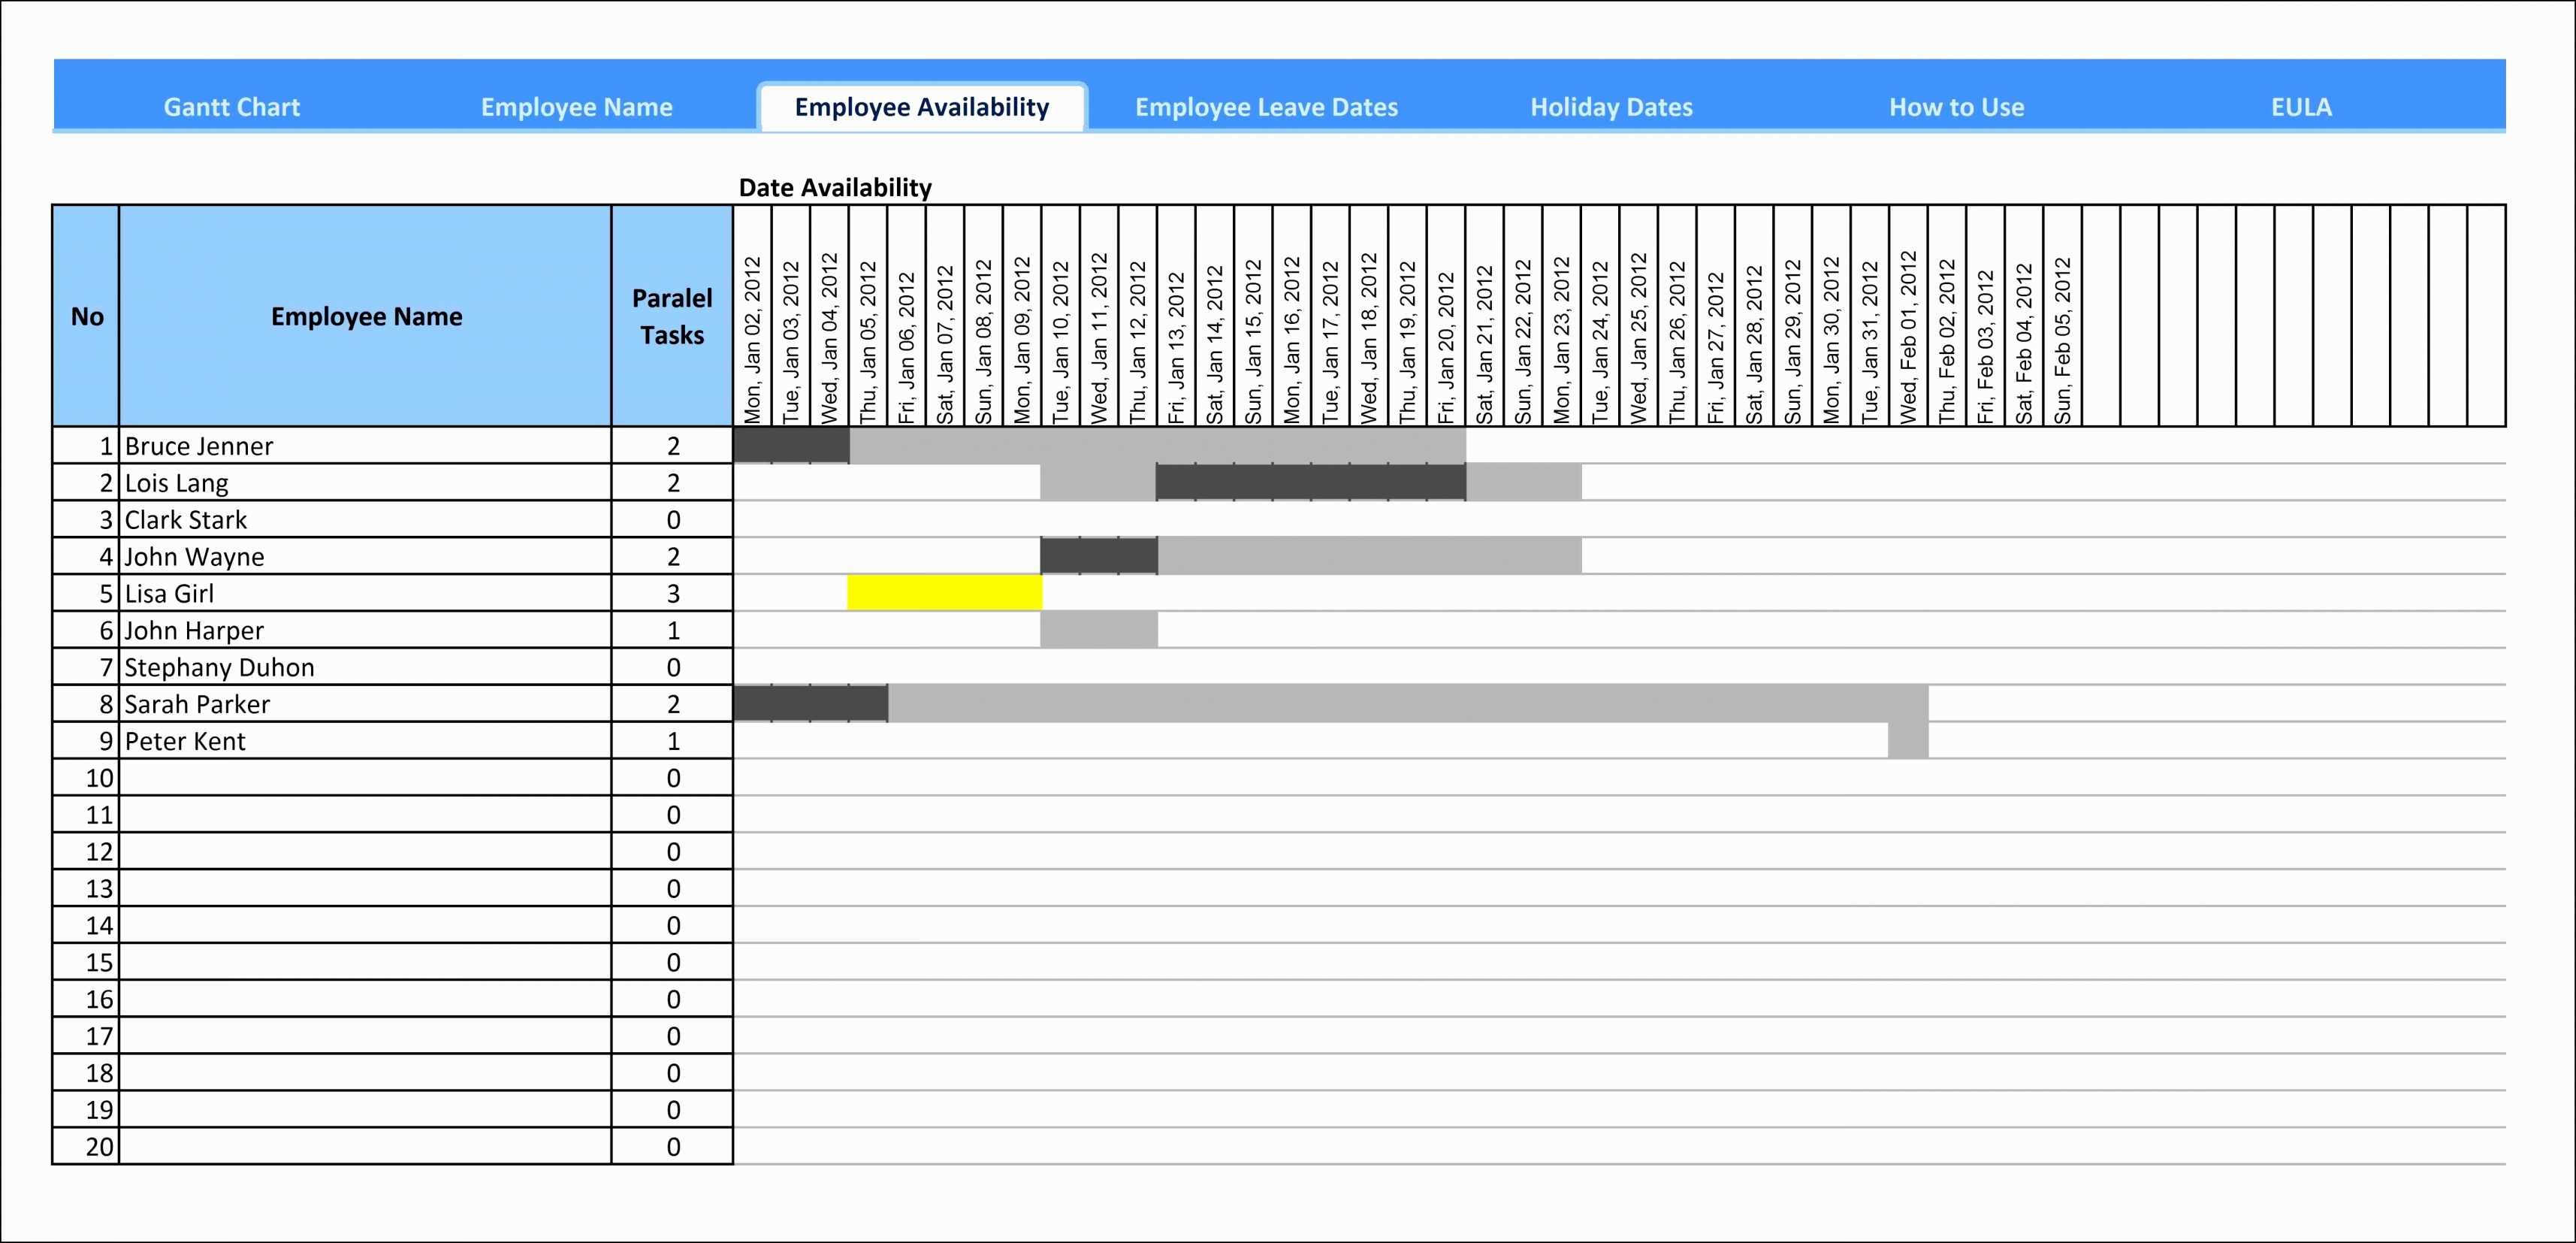 Free Download Gantt Chart Template For Excel Diagram Awesome with Microsoft Office Gantt Chart Template Free